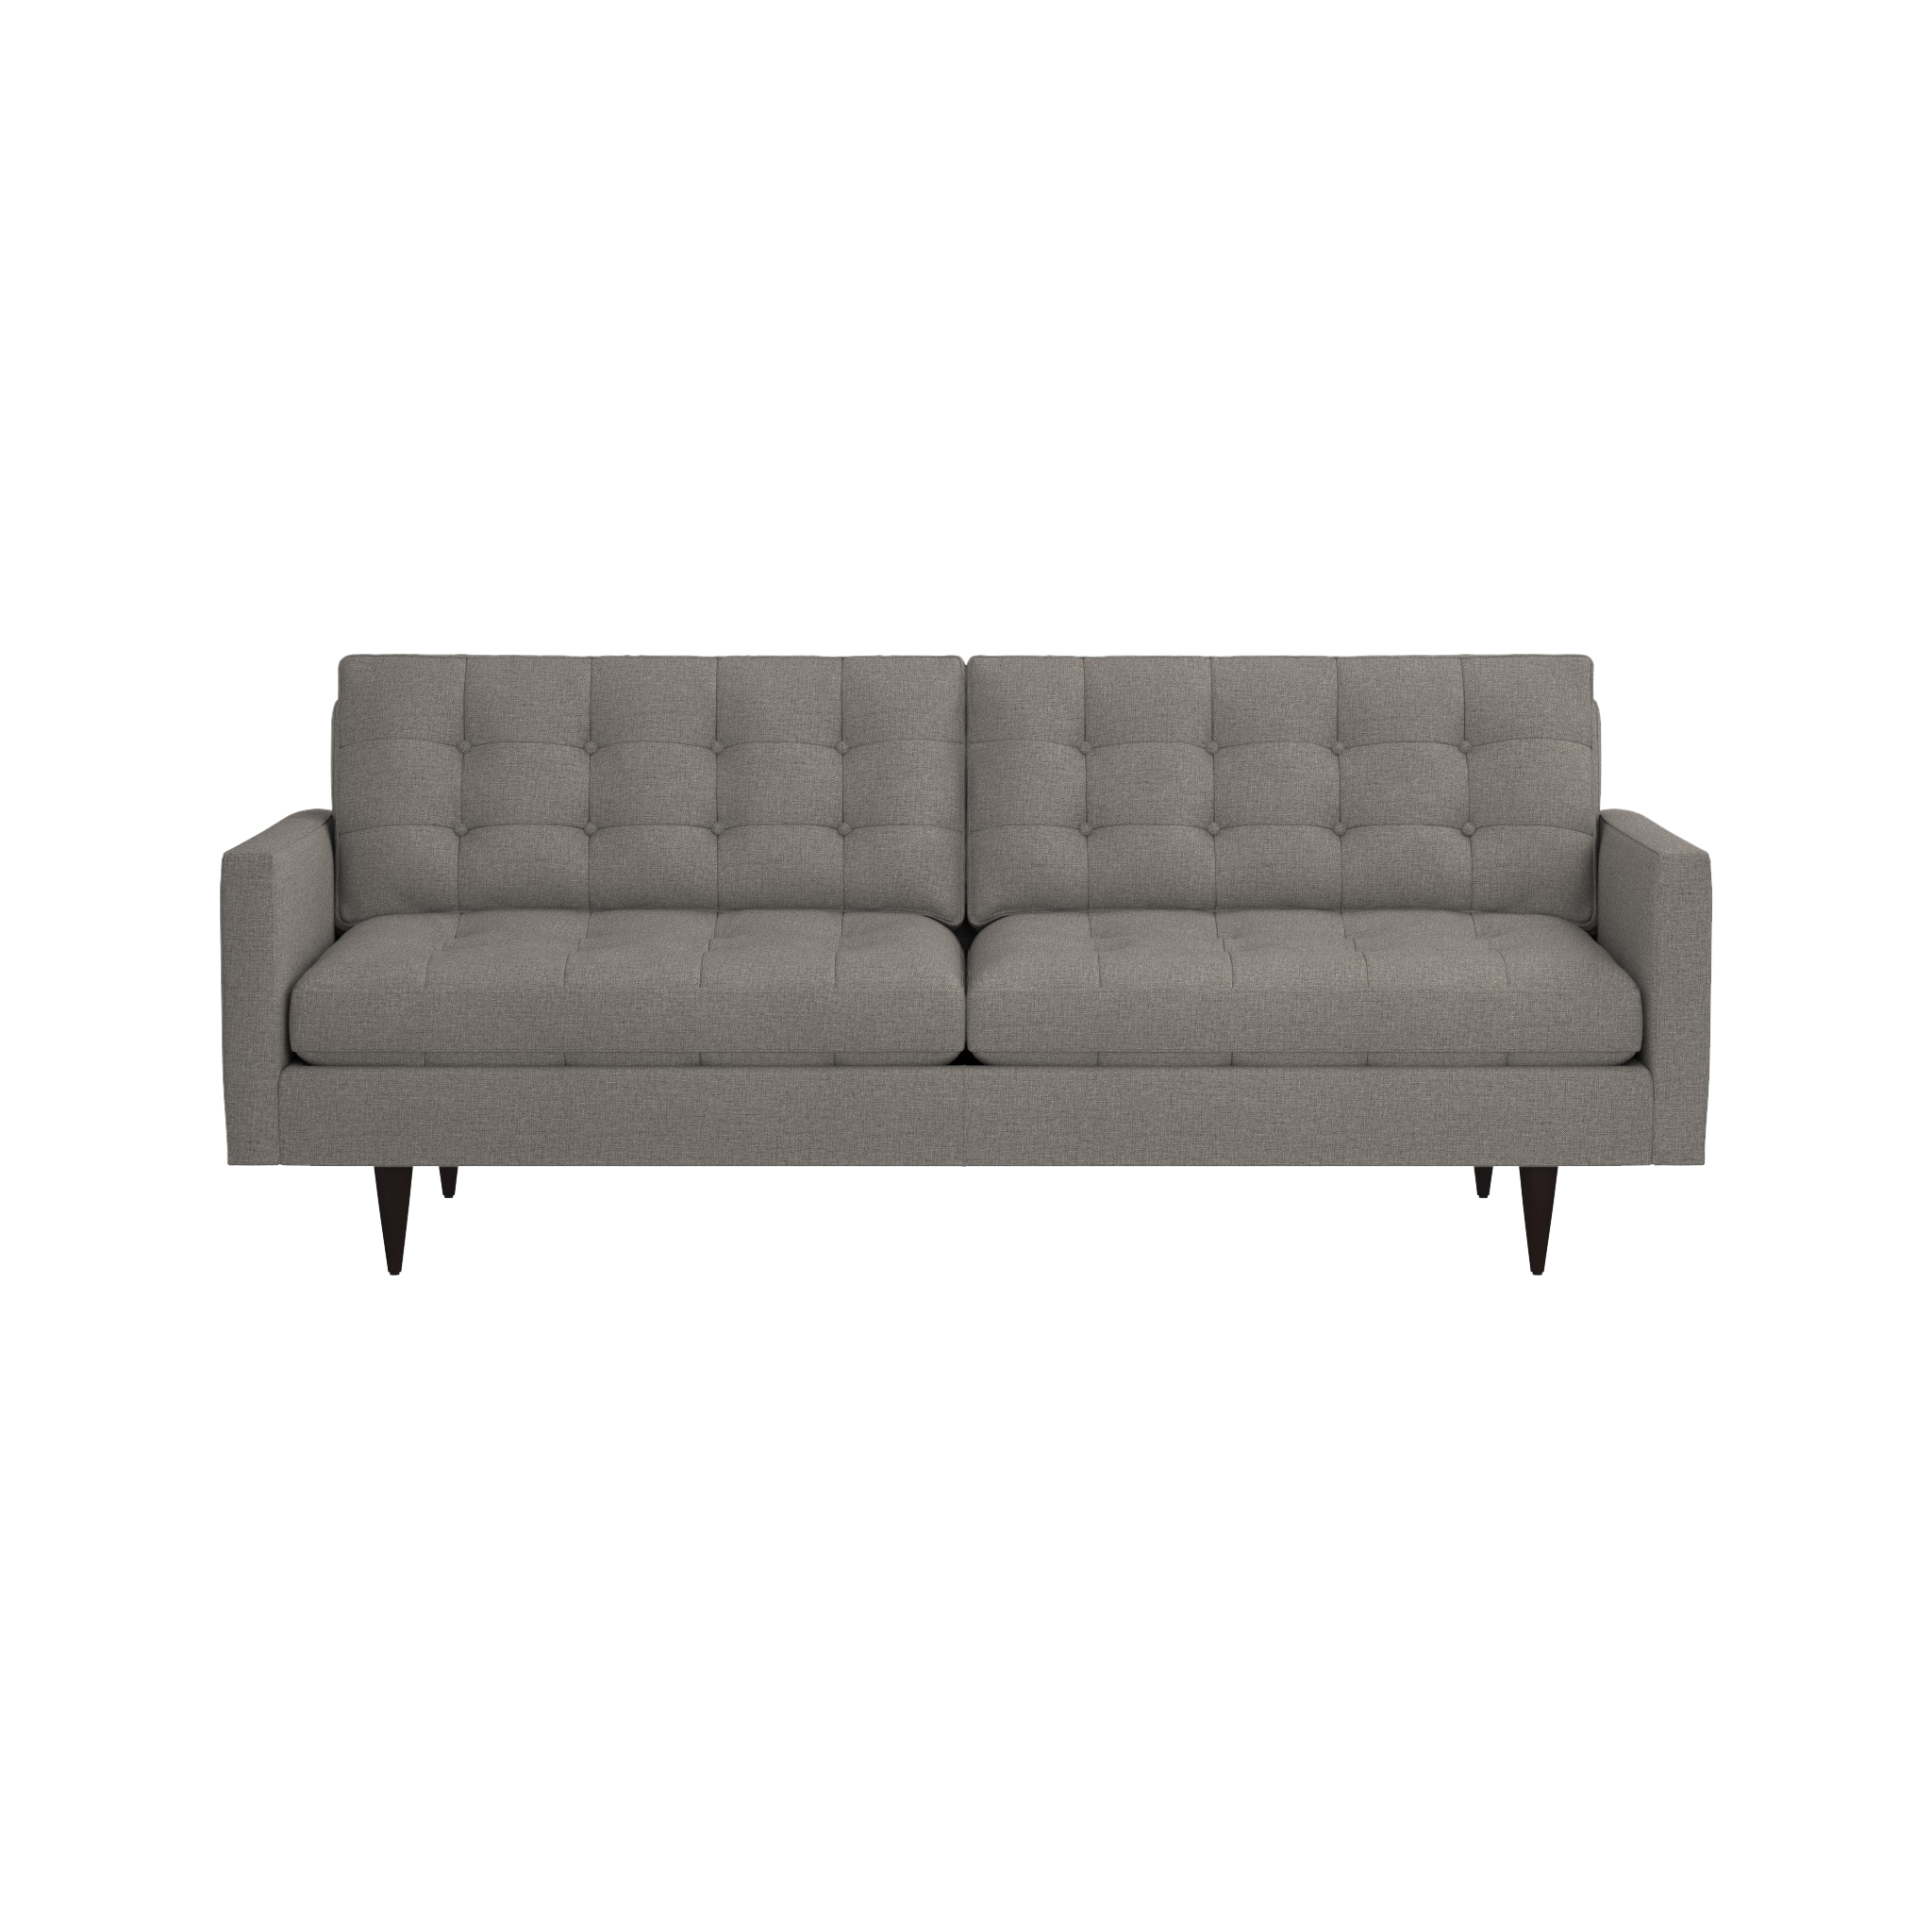 Petrie Mid Century Sofa | Crate And Barrel With Sectional Crate And Barrel (Image 16 of 20)